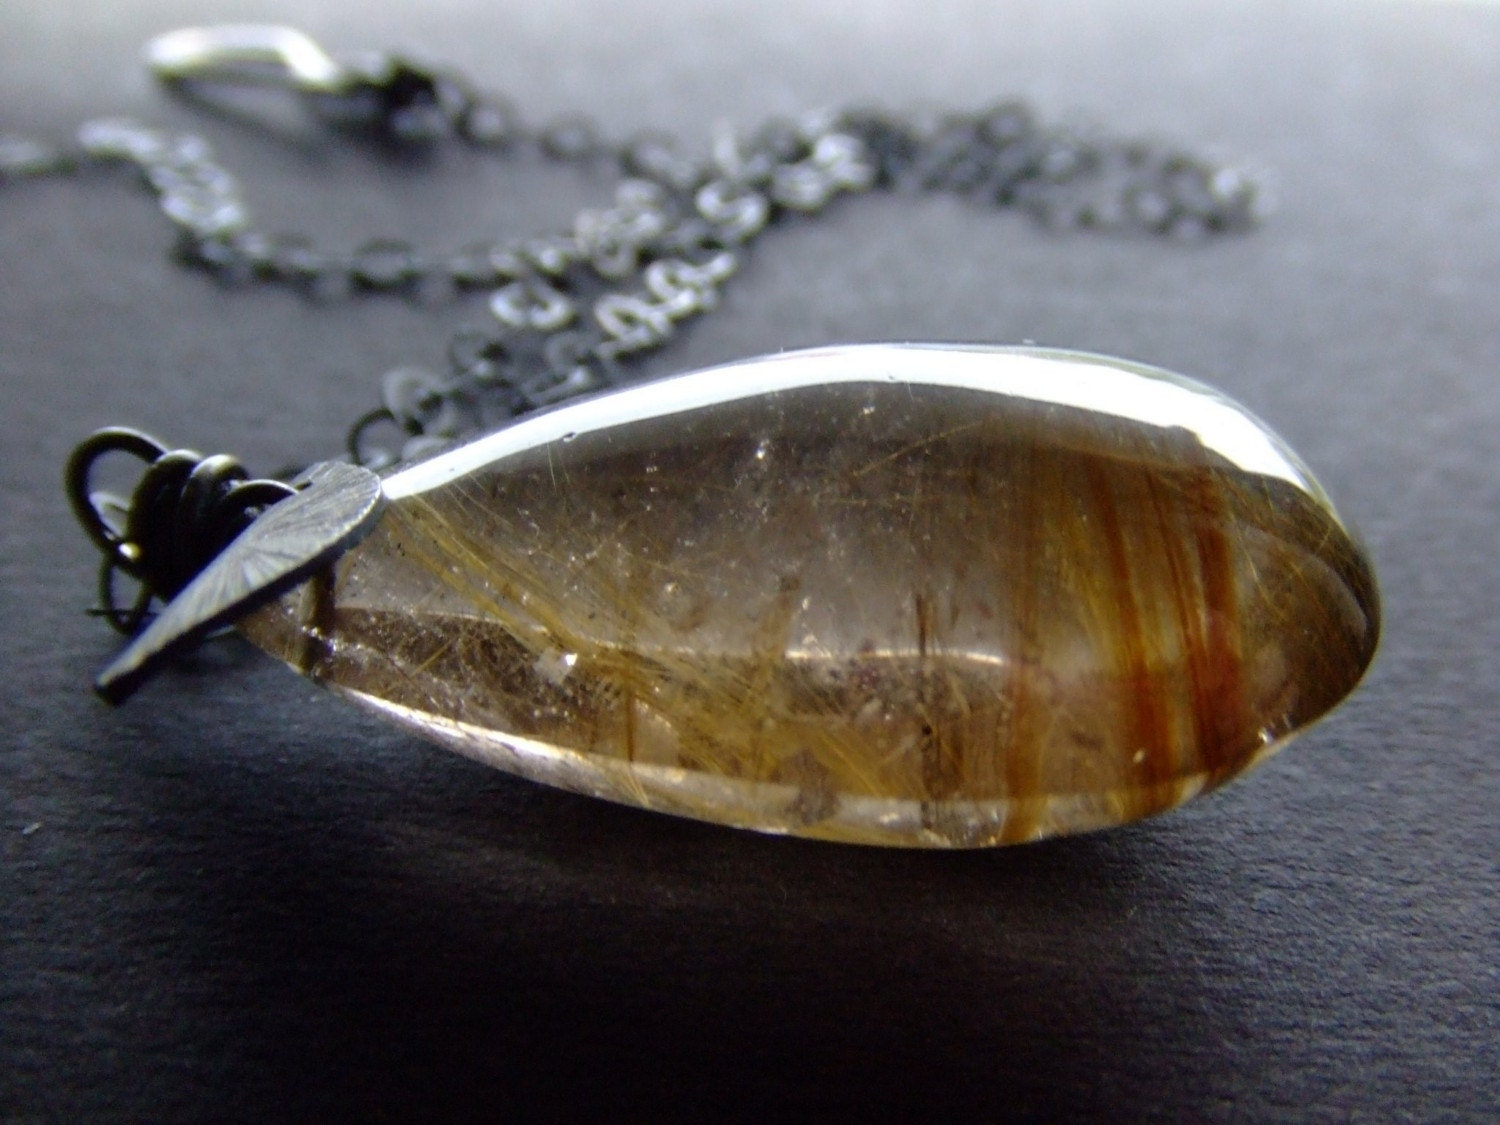 Handmade Jewelry on Etsy - SALE. pera de ouro. XXXlarge gold rutile quartz necklace by BeijoFlor from etsy.com